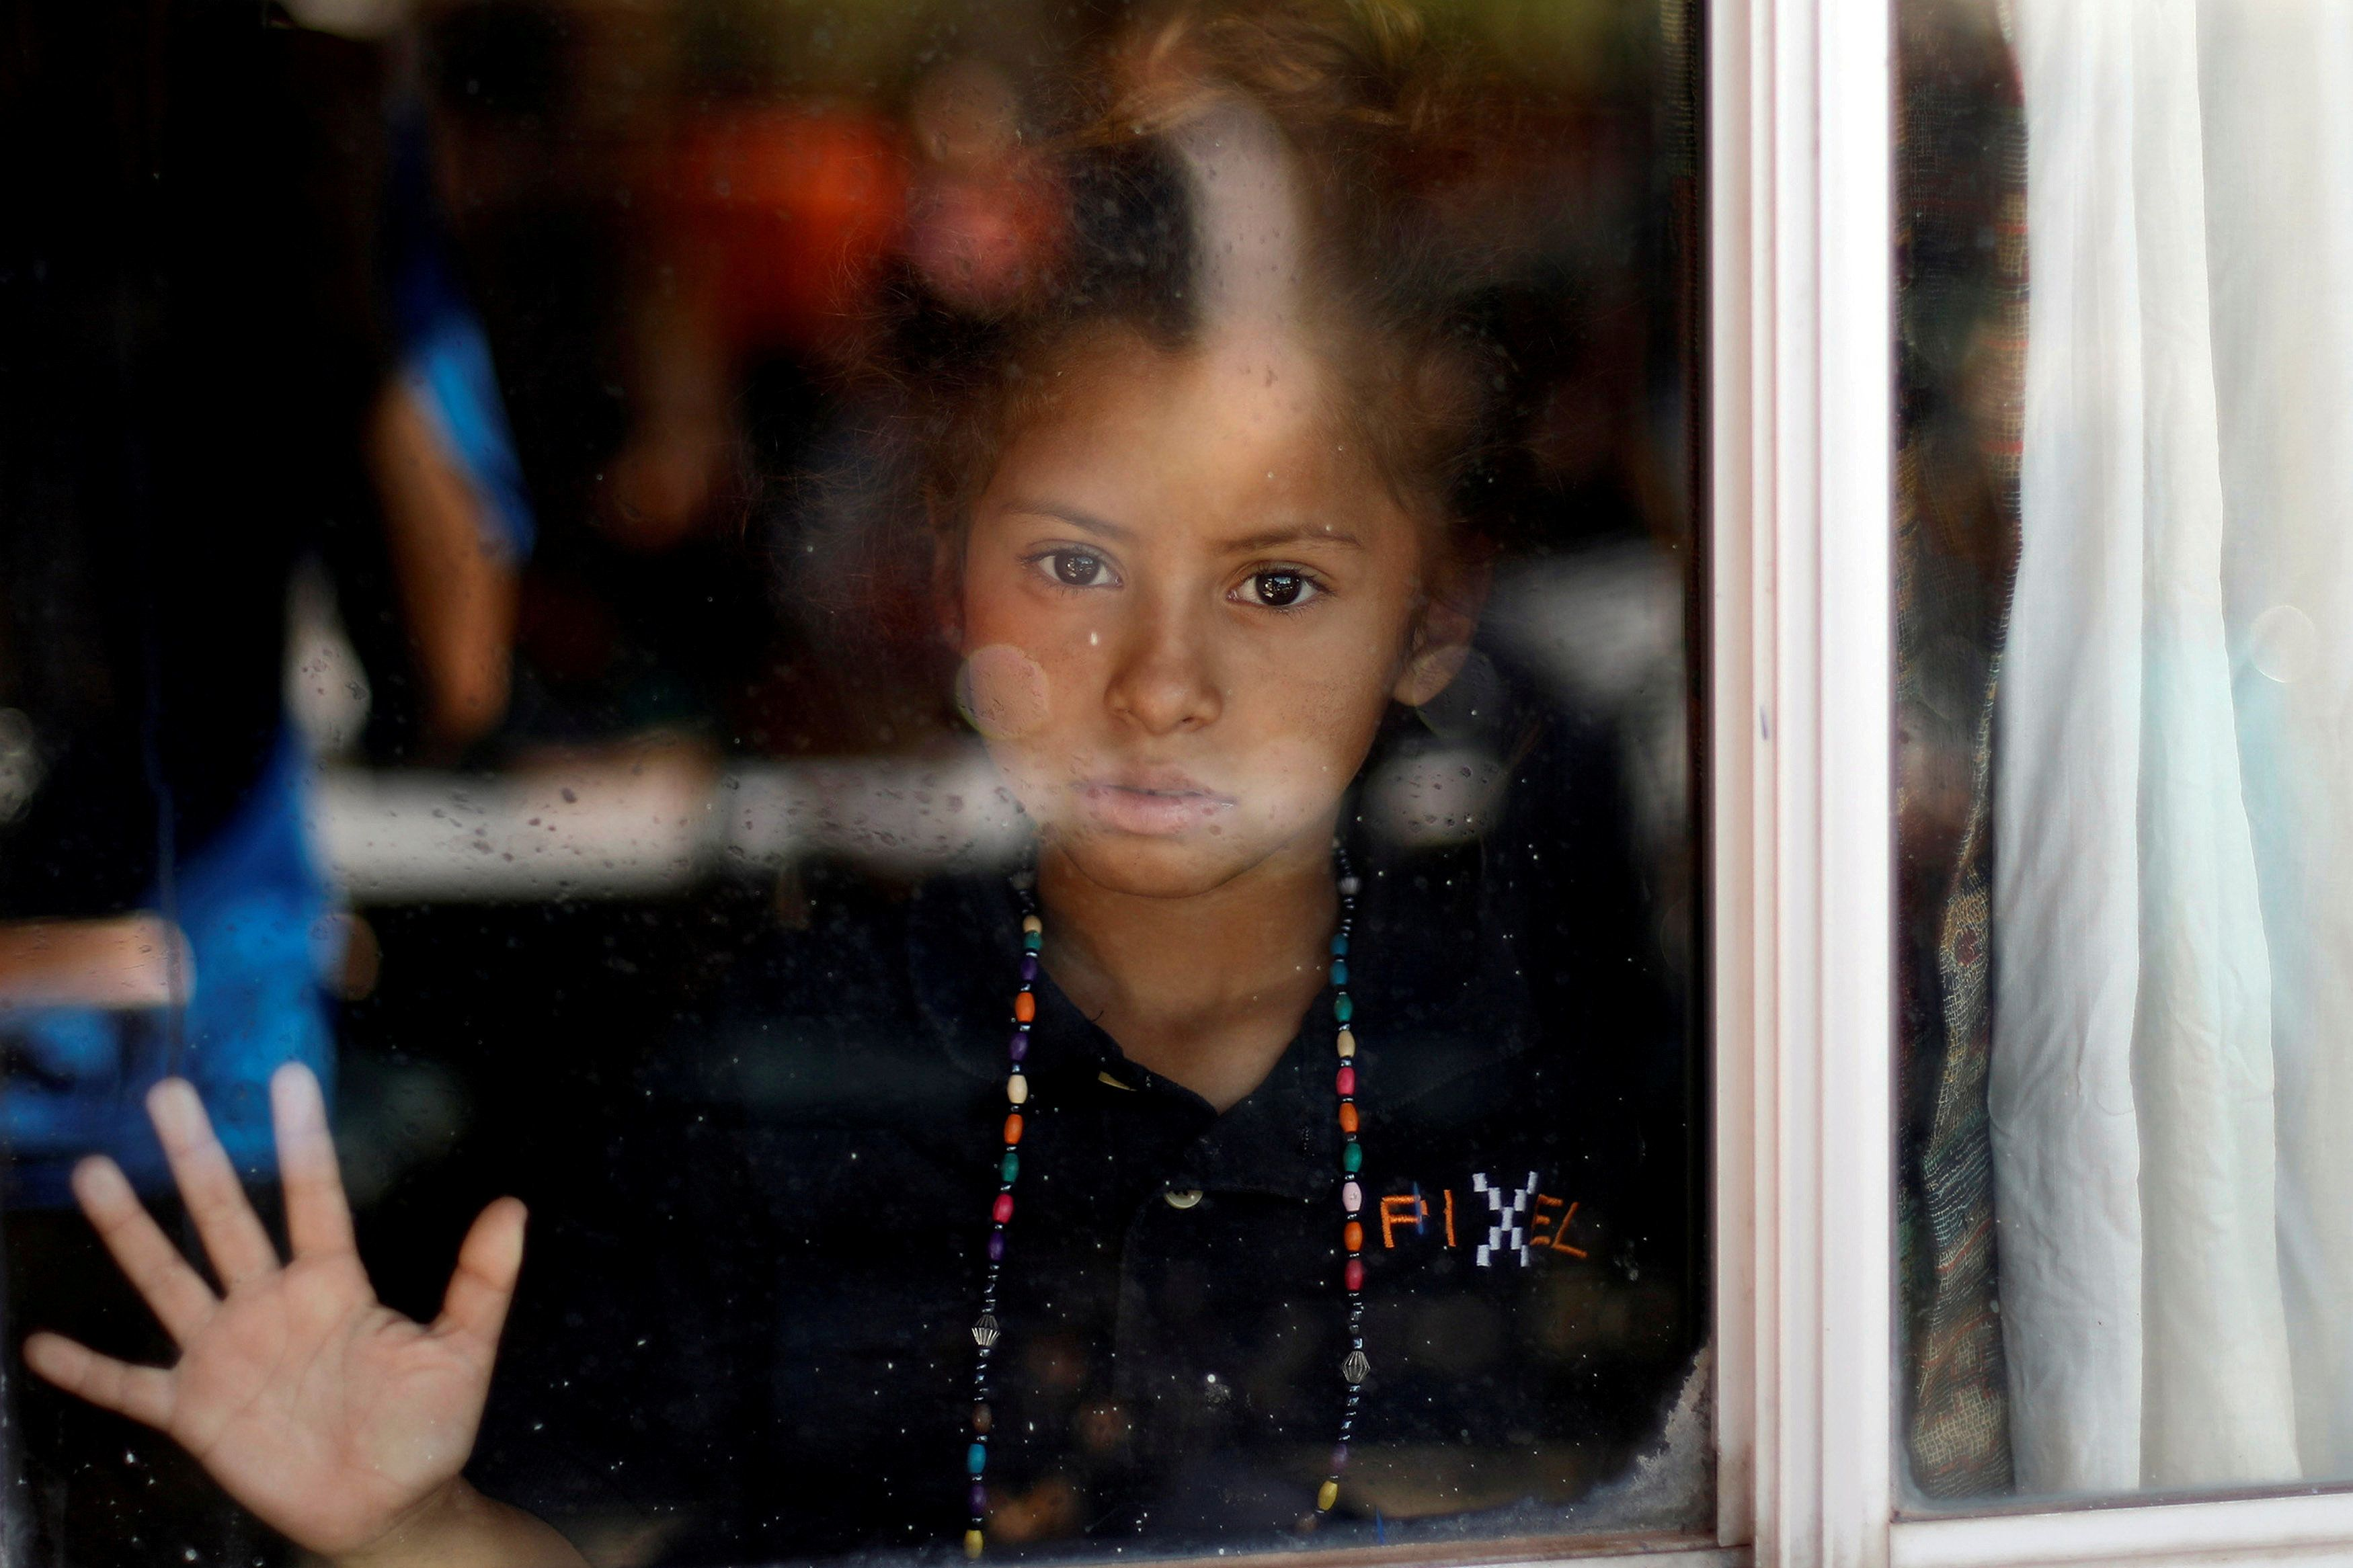 A Central American migrant, moving in a caravan through Mexico and traveling to request asylum in U.S, looks on as she makes a stop during her travels to Tijuana, at a shelter in San Luis Rio Colorado, in Sonora state, Mexico April 25, 2018. REUTERS/Edgard Garrido     TPX IMAGES OF THE DAY